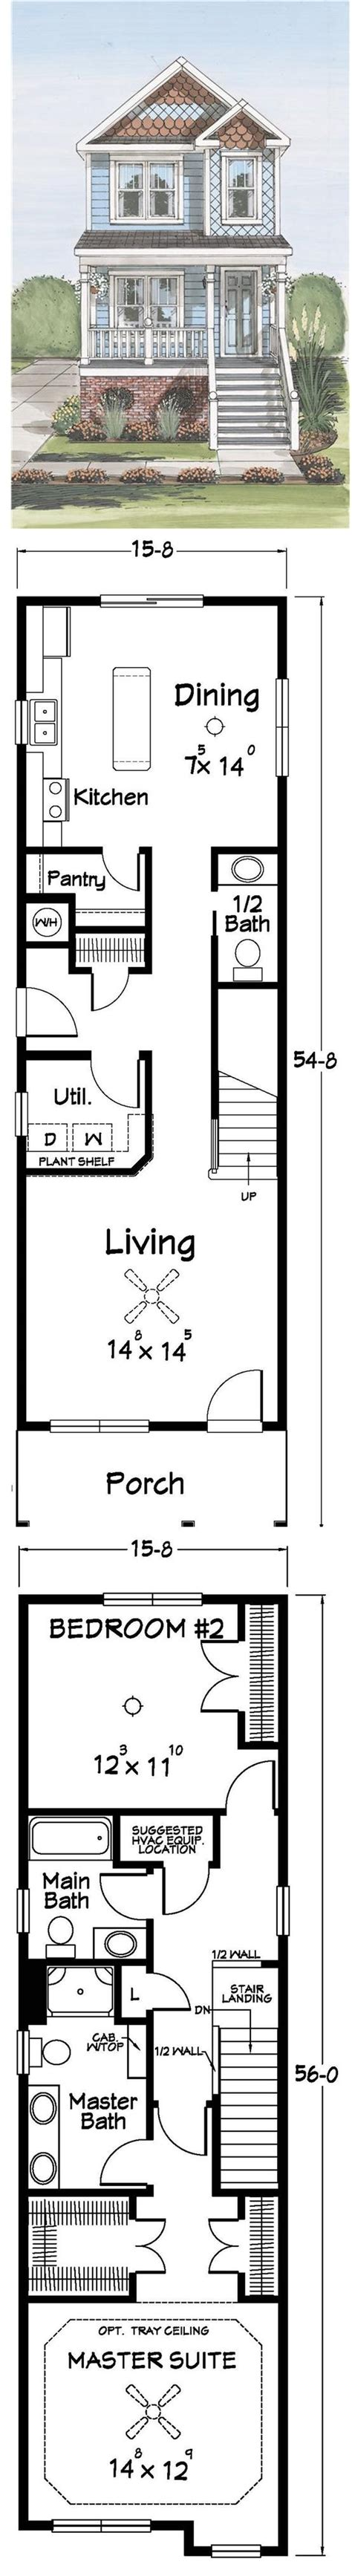 house designs for small lots 25 best ideas about narrow house plans on pinterest narrow lot house plans shotgun